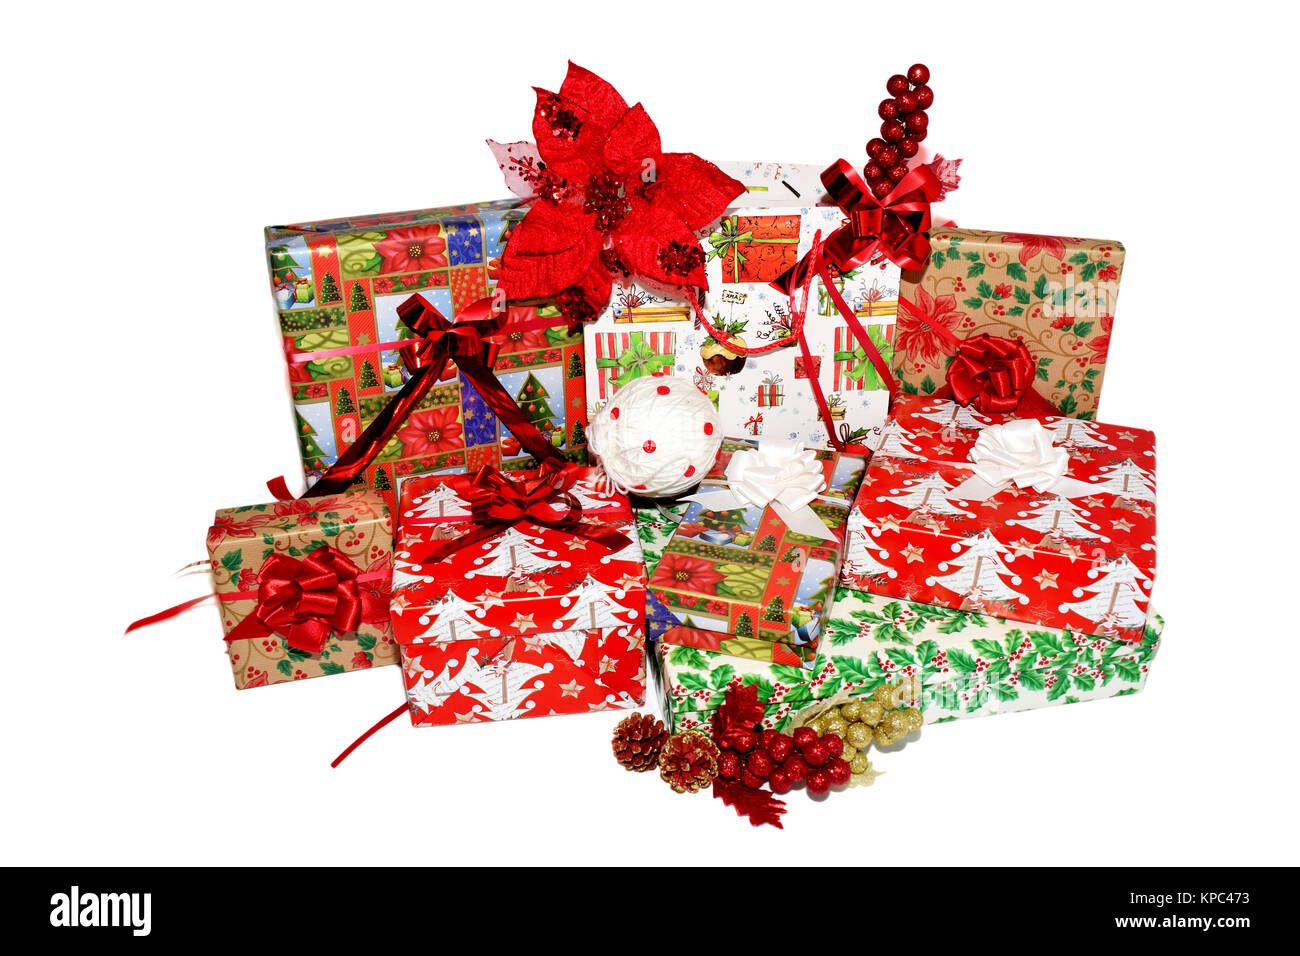 christmas gifts in boxes and bags wrapped in themed paper decorations with red decorative flowers christmas white and golden globes and pine cones